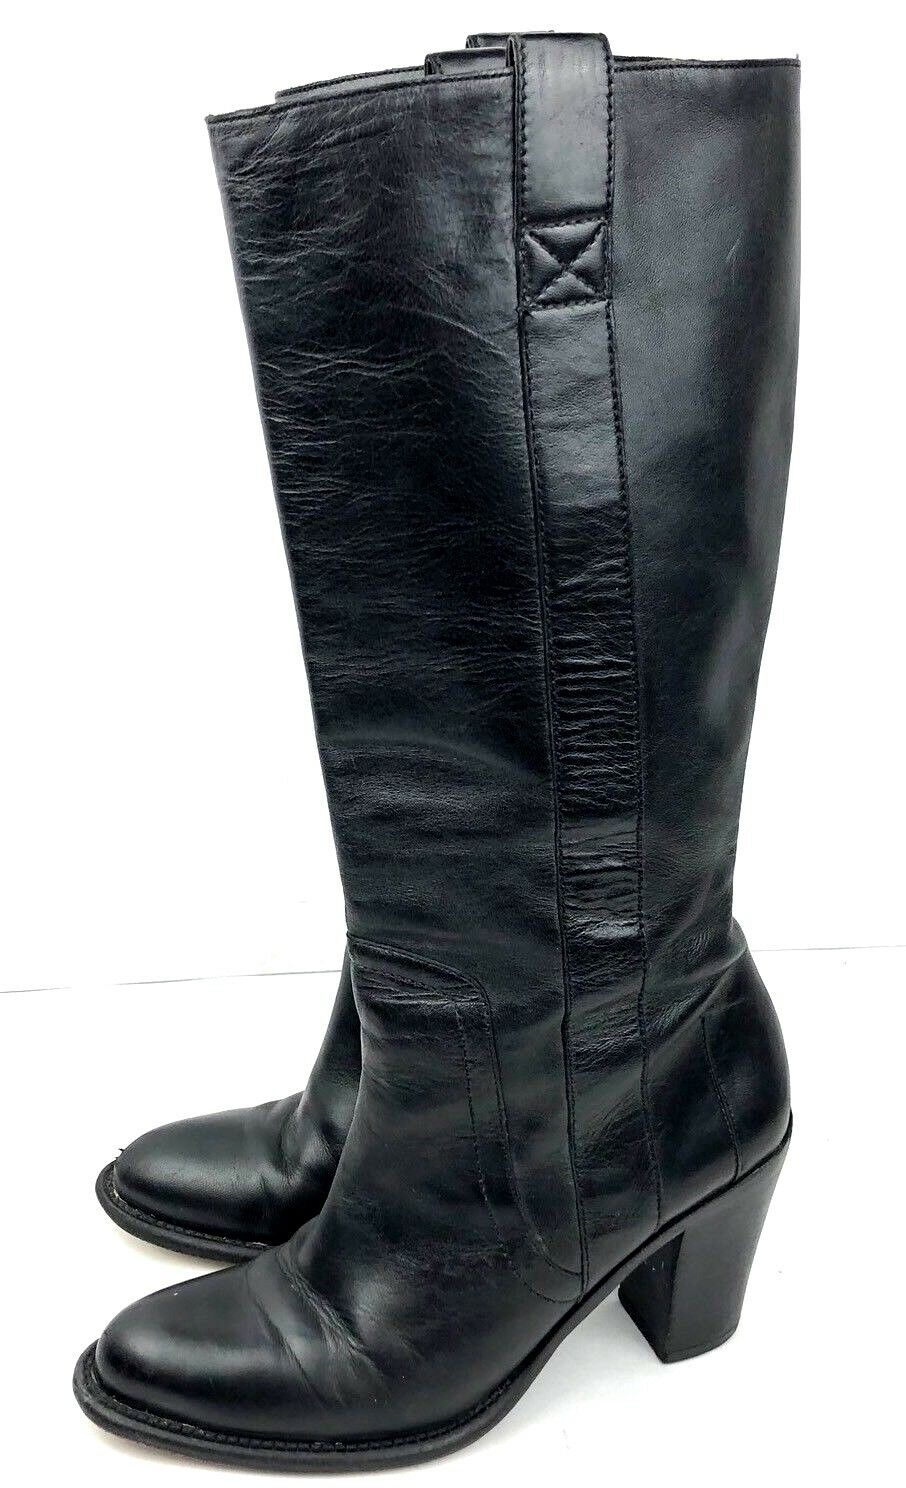 Banana Republic Women Knee High Boot Size 6 M Black Leather High Heel Boot